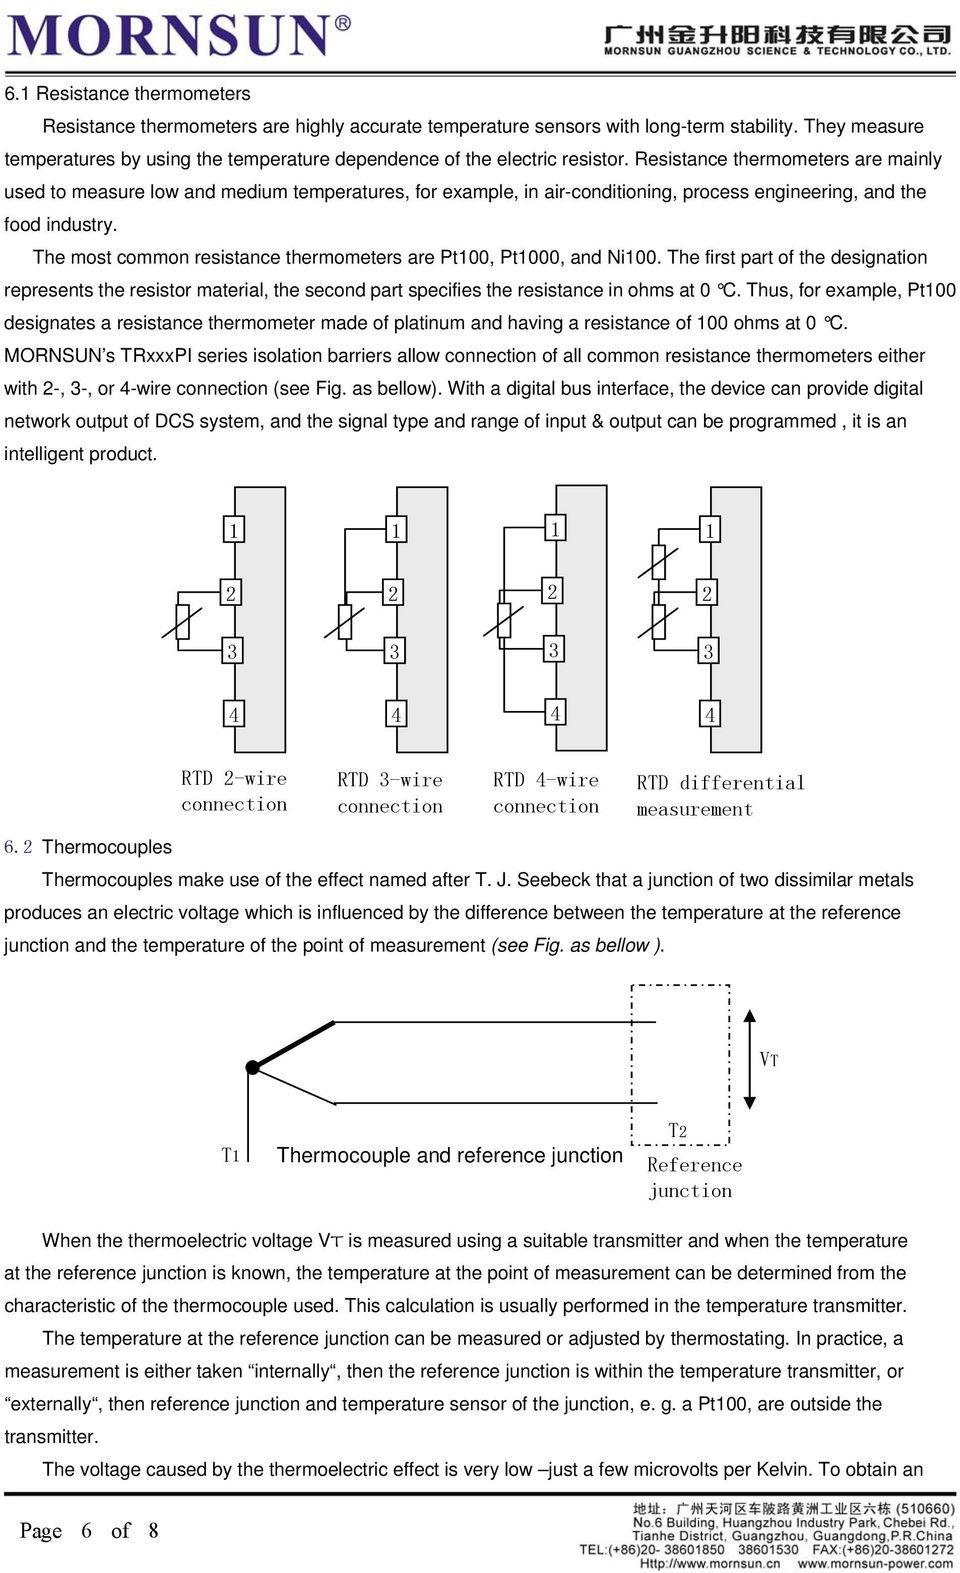 Application Notes Of Signal Isolators Pdf 20 Ma Current Loop Measuring Circuits Basics I Industrial Resistance Thermometers Are Mainly Used To Measure Low And Medium Temperatures For Example In